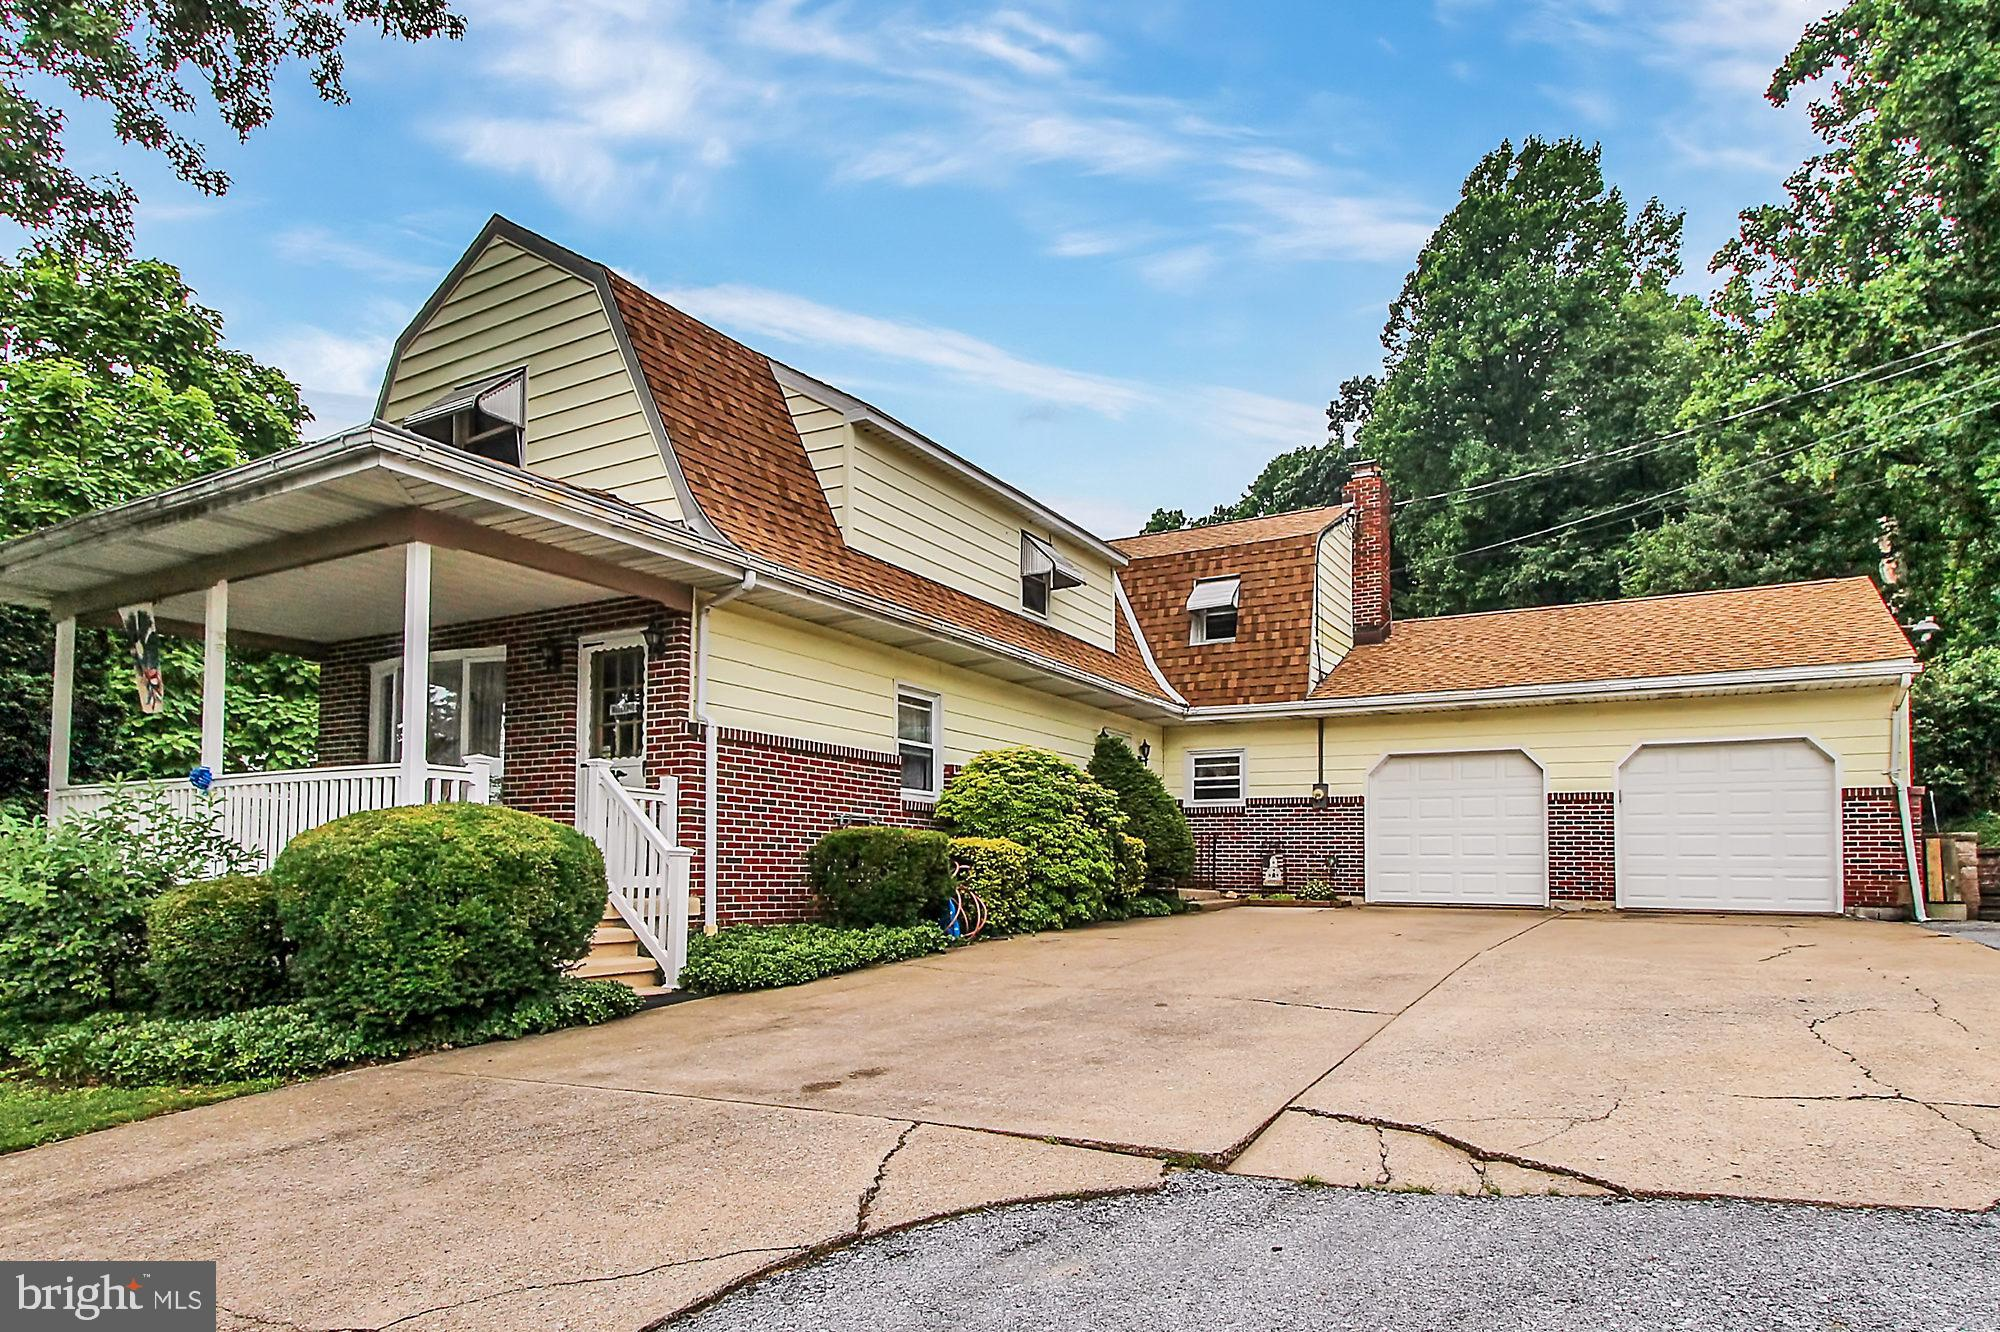 3082 PRICETOWN ROAD, TEMPLE, PA 19560